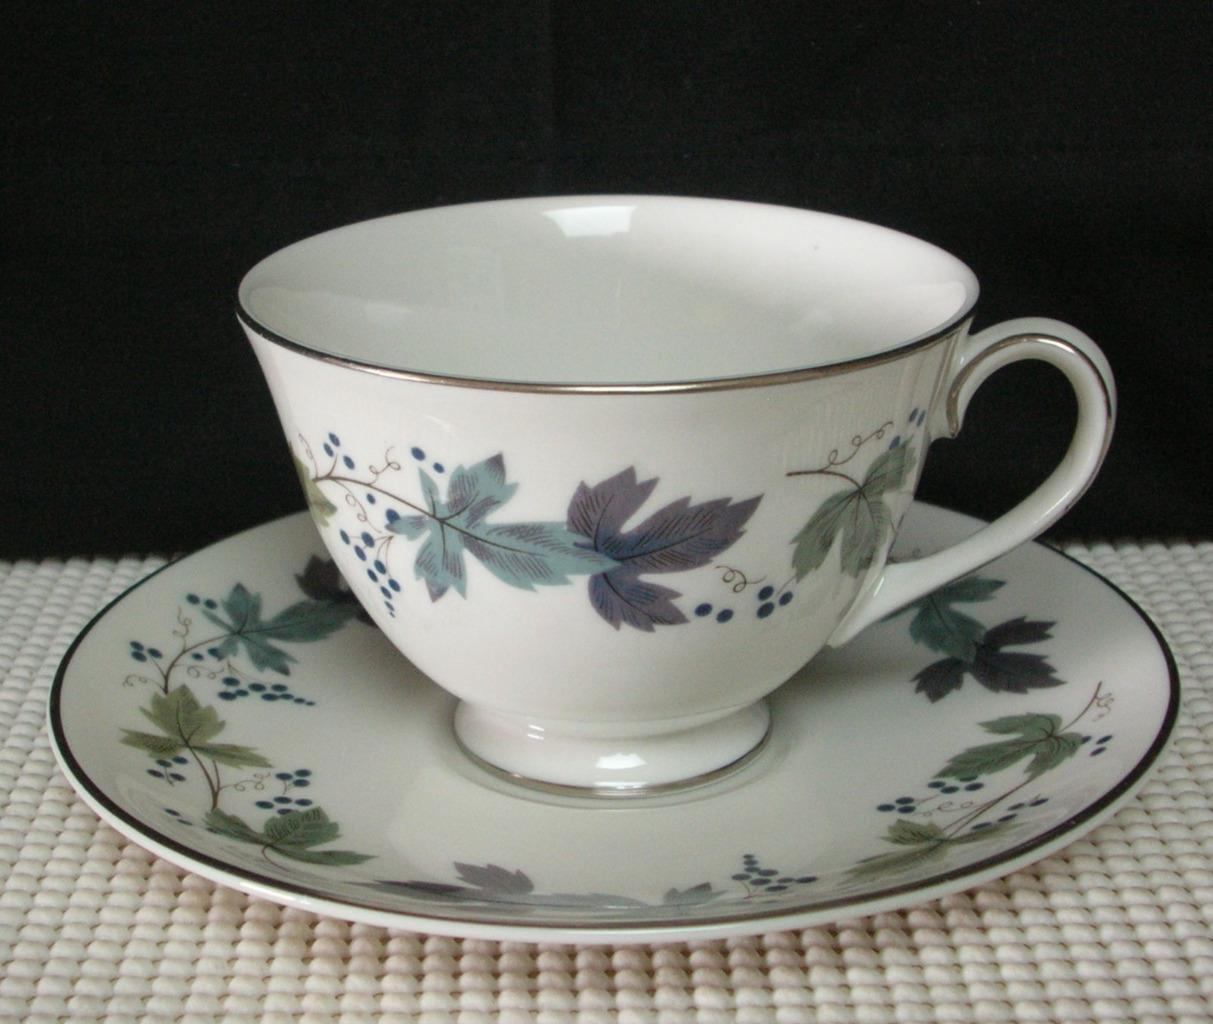 Primary image for BURGUNDY TC1001 by  Royal Doulton TEA CUP & SAUCER (s) Bone China EUC